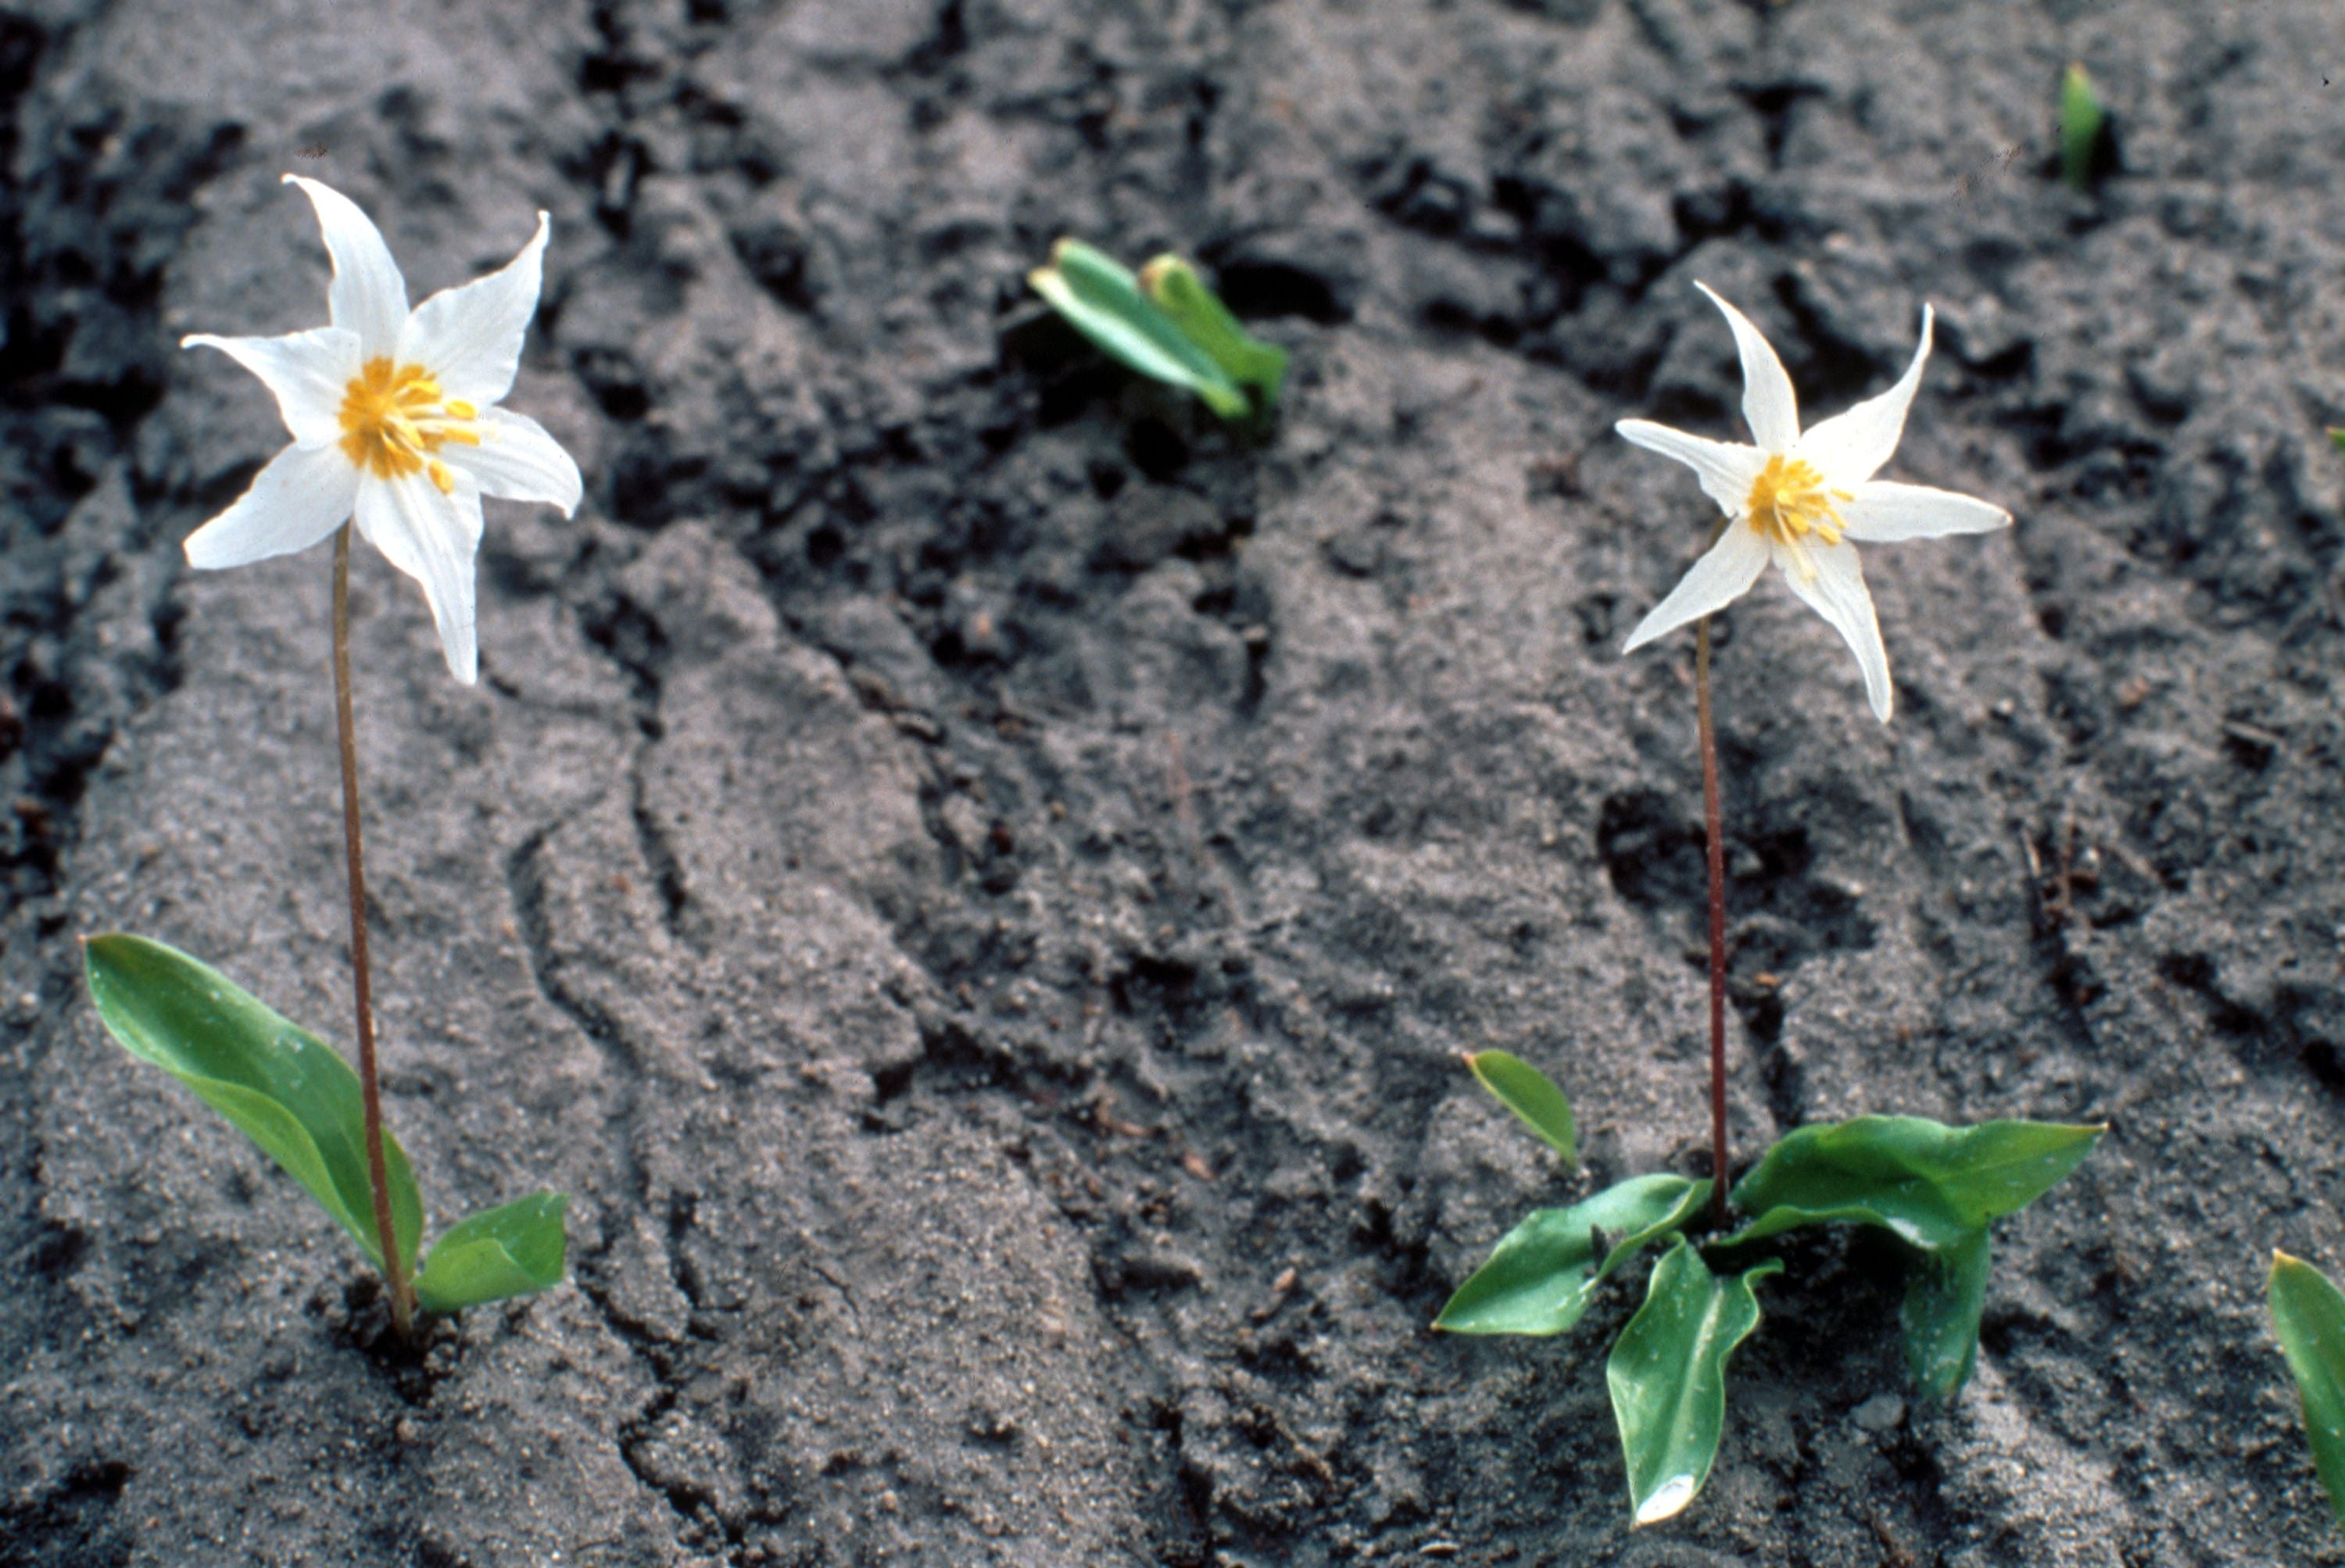 Image shows two avalanche lilies poking up through gray blast deposits. Their white six-petaled blooms with yellow centers stand out in stark contrast against the dark gray background.